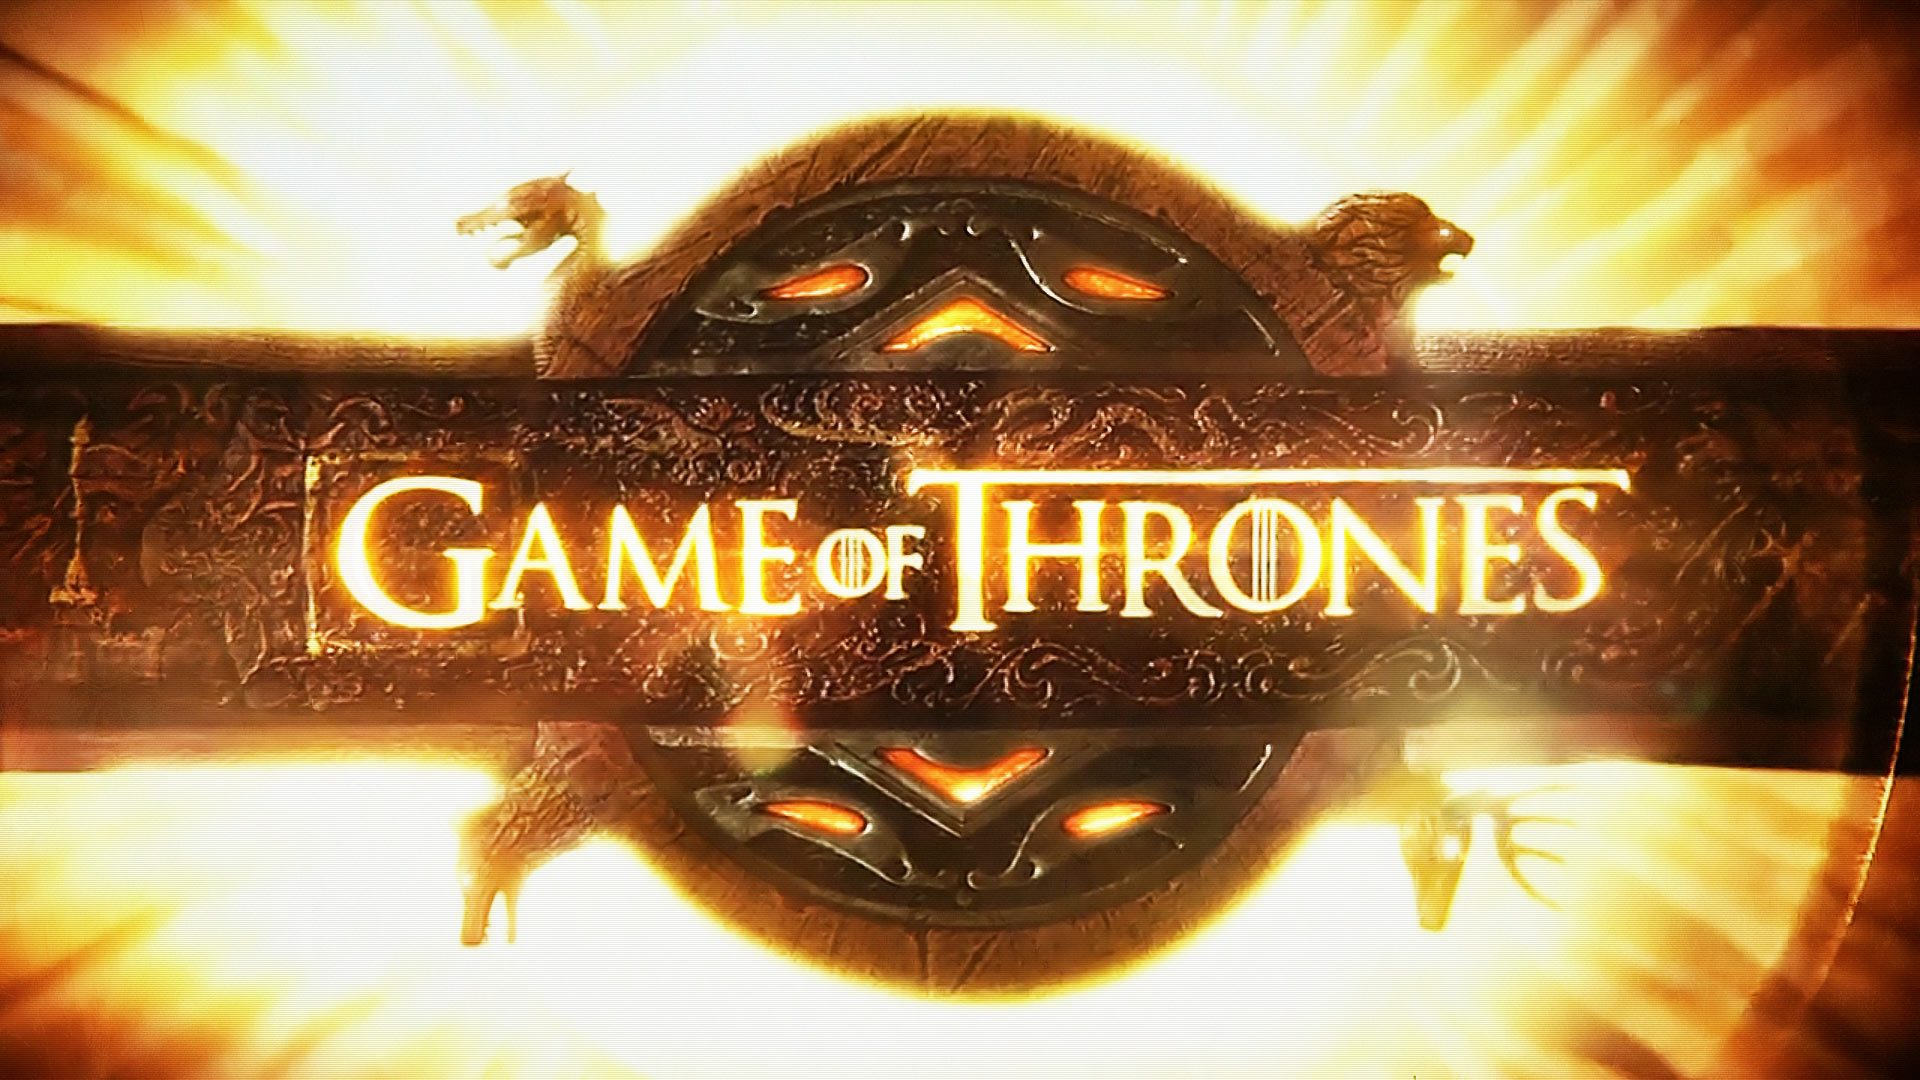 Filming Location of 'Game of Thrones' Prequels Revealed